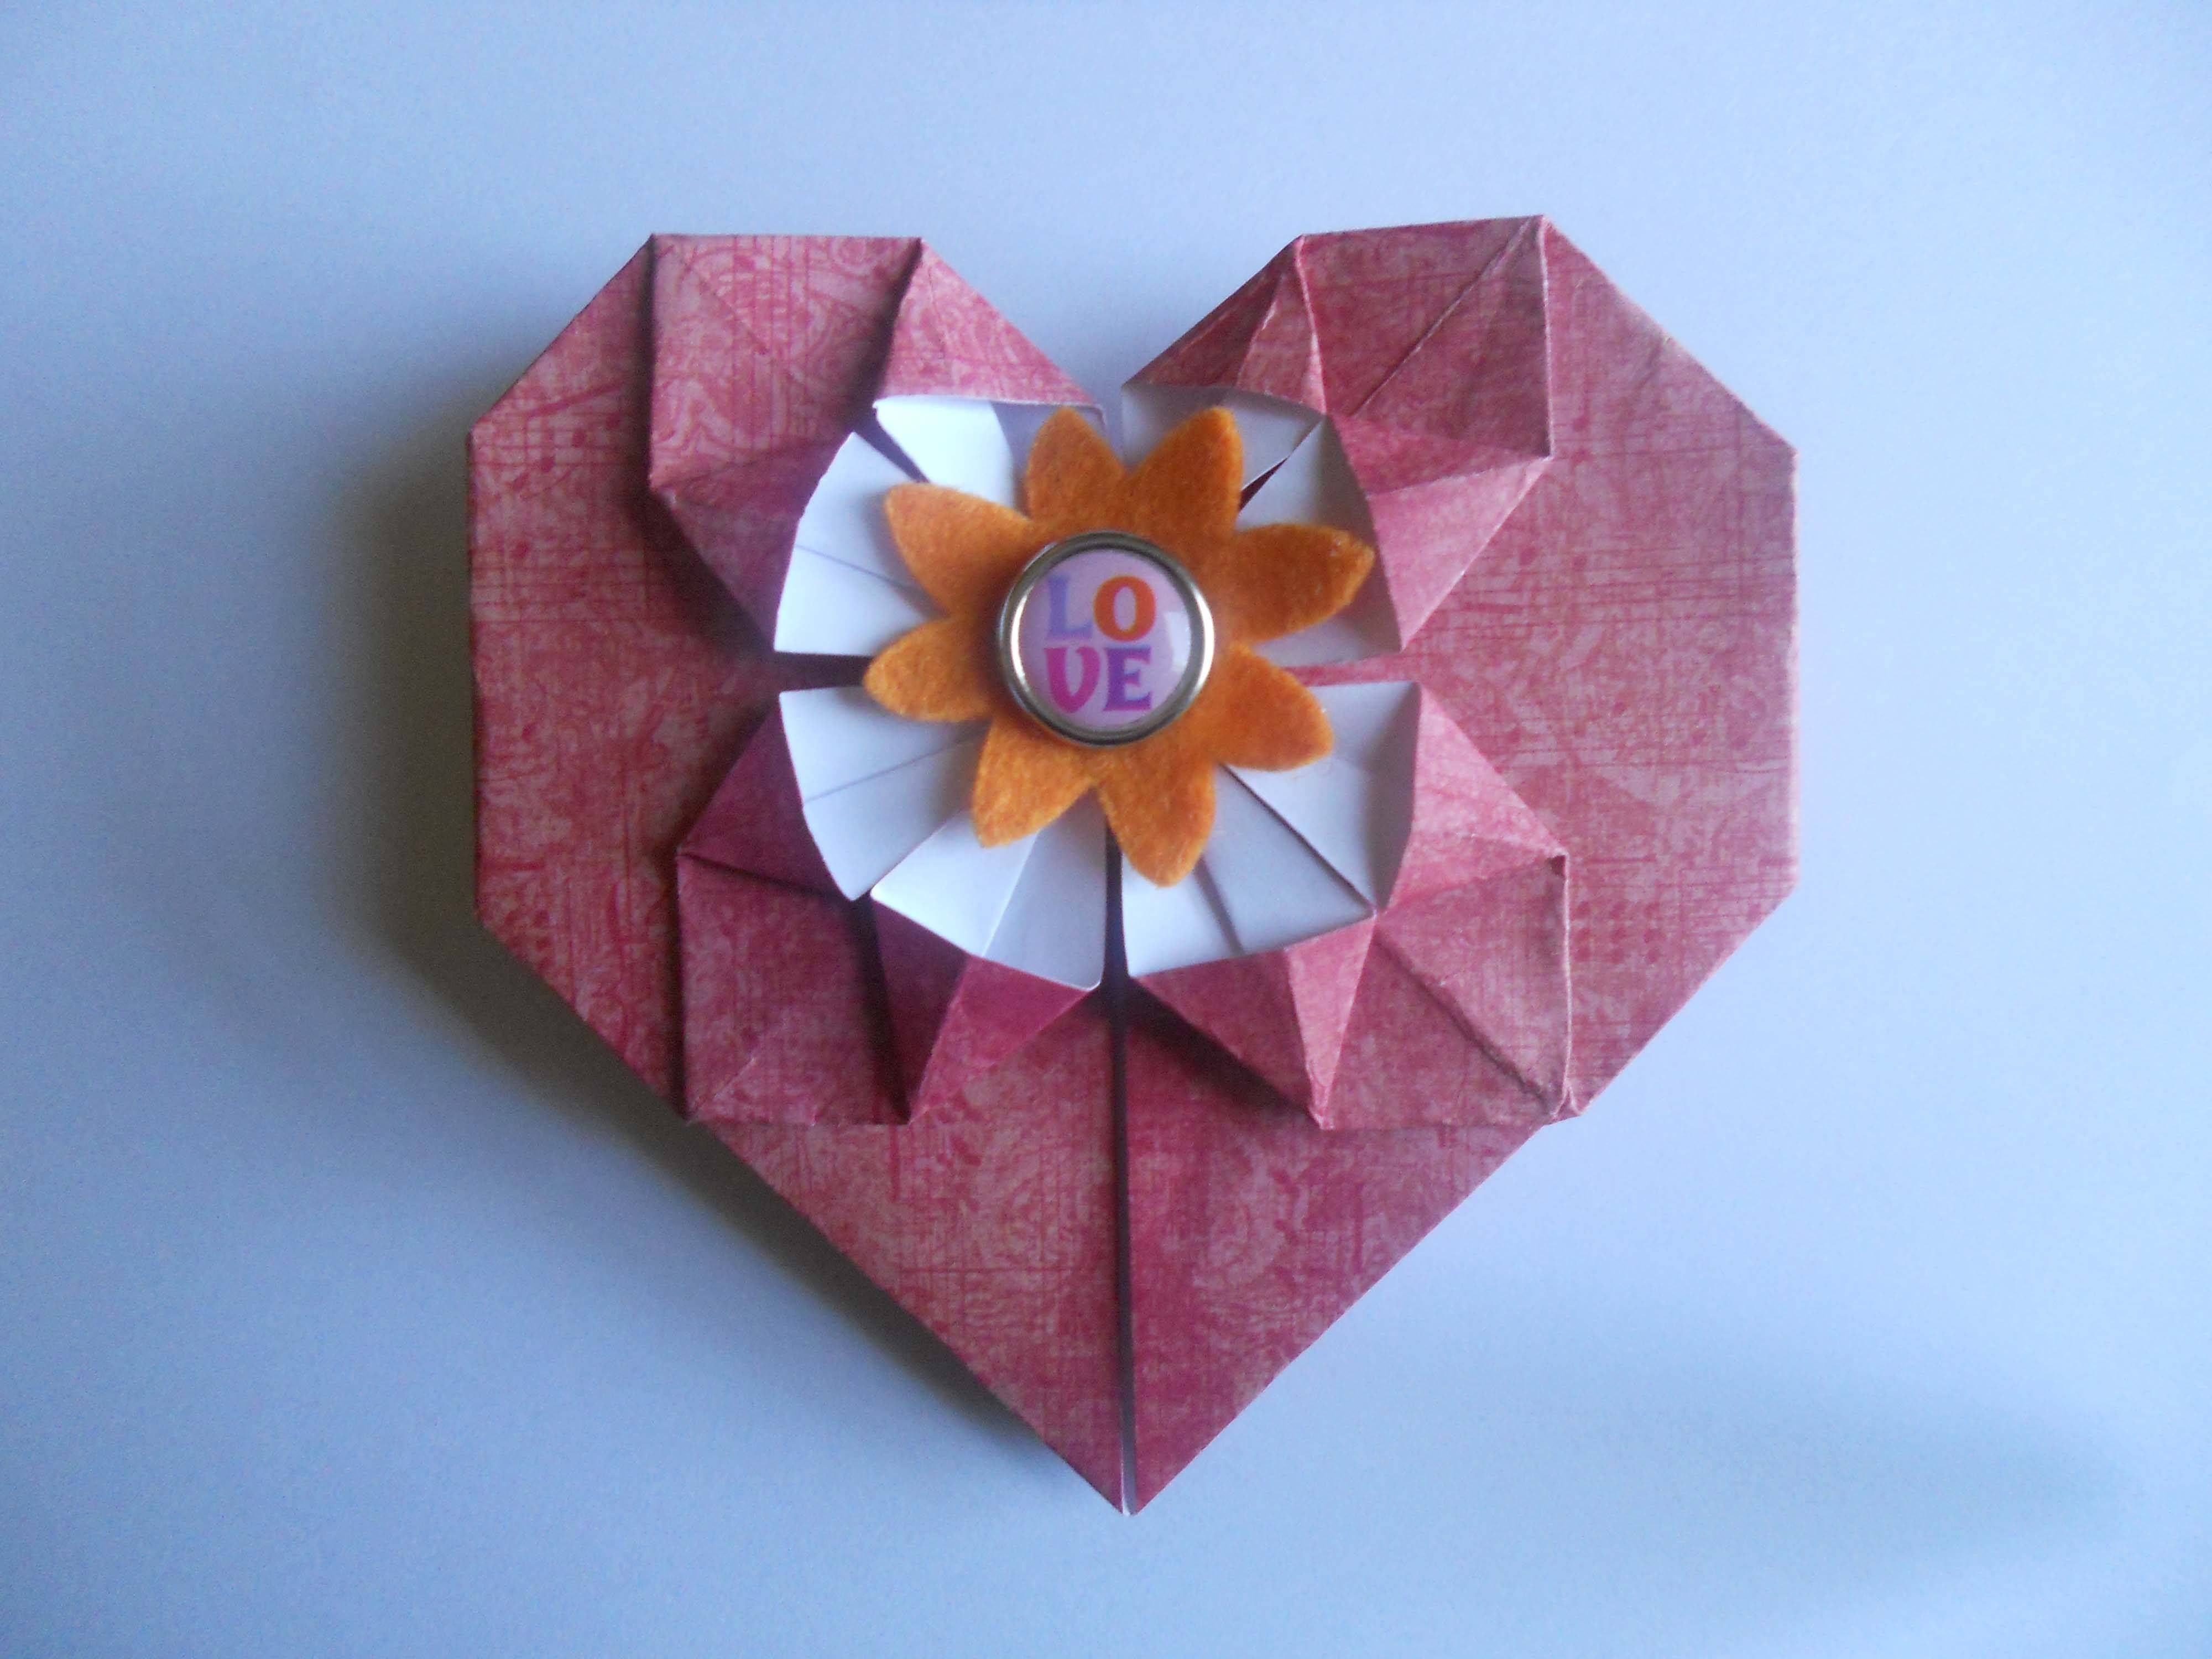 Heart W Flower In Center Origami Quilling Pinterest Origami